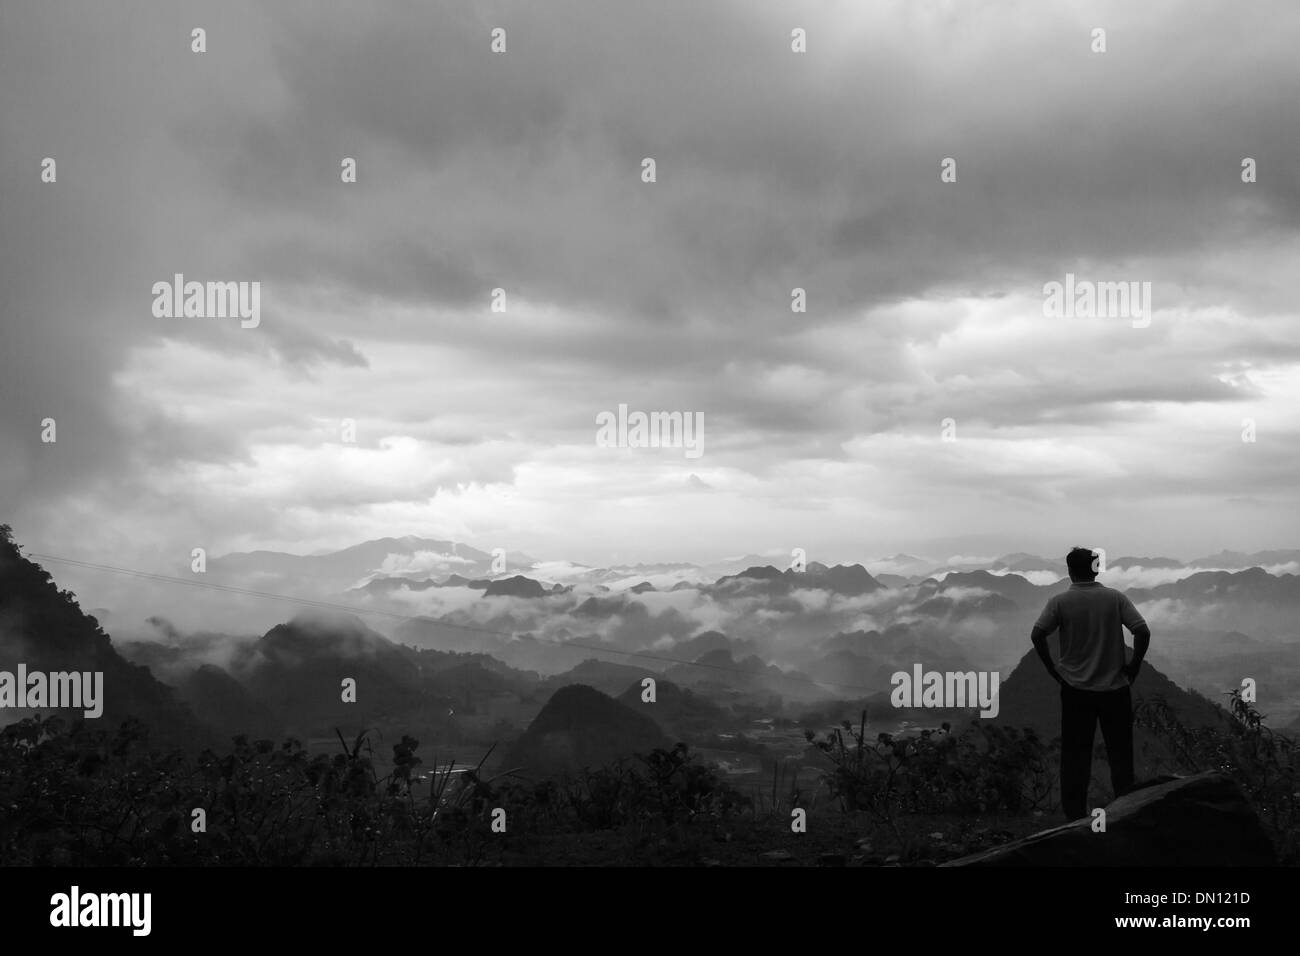 Mountain with clouds north vietnam hoa binh - Stock Image